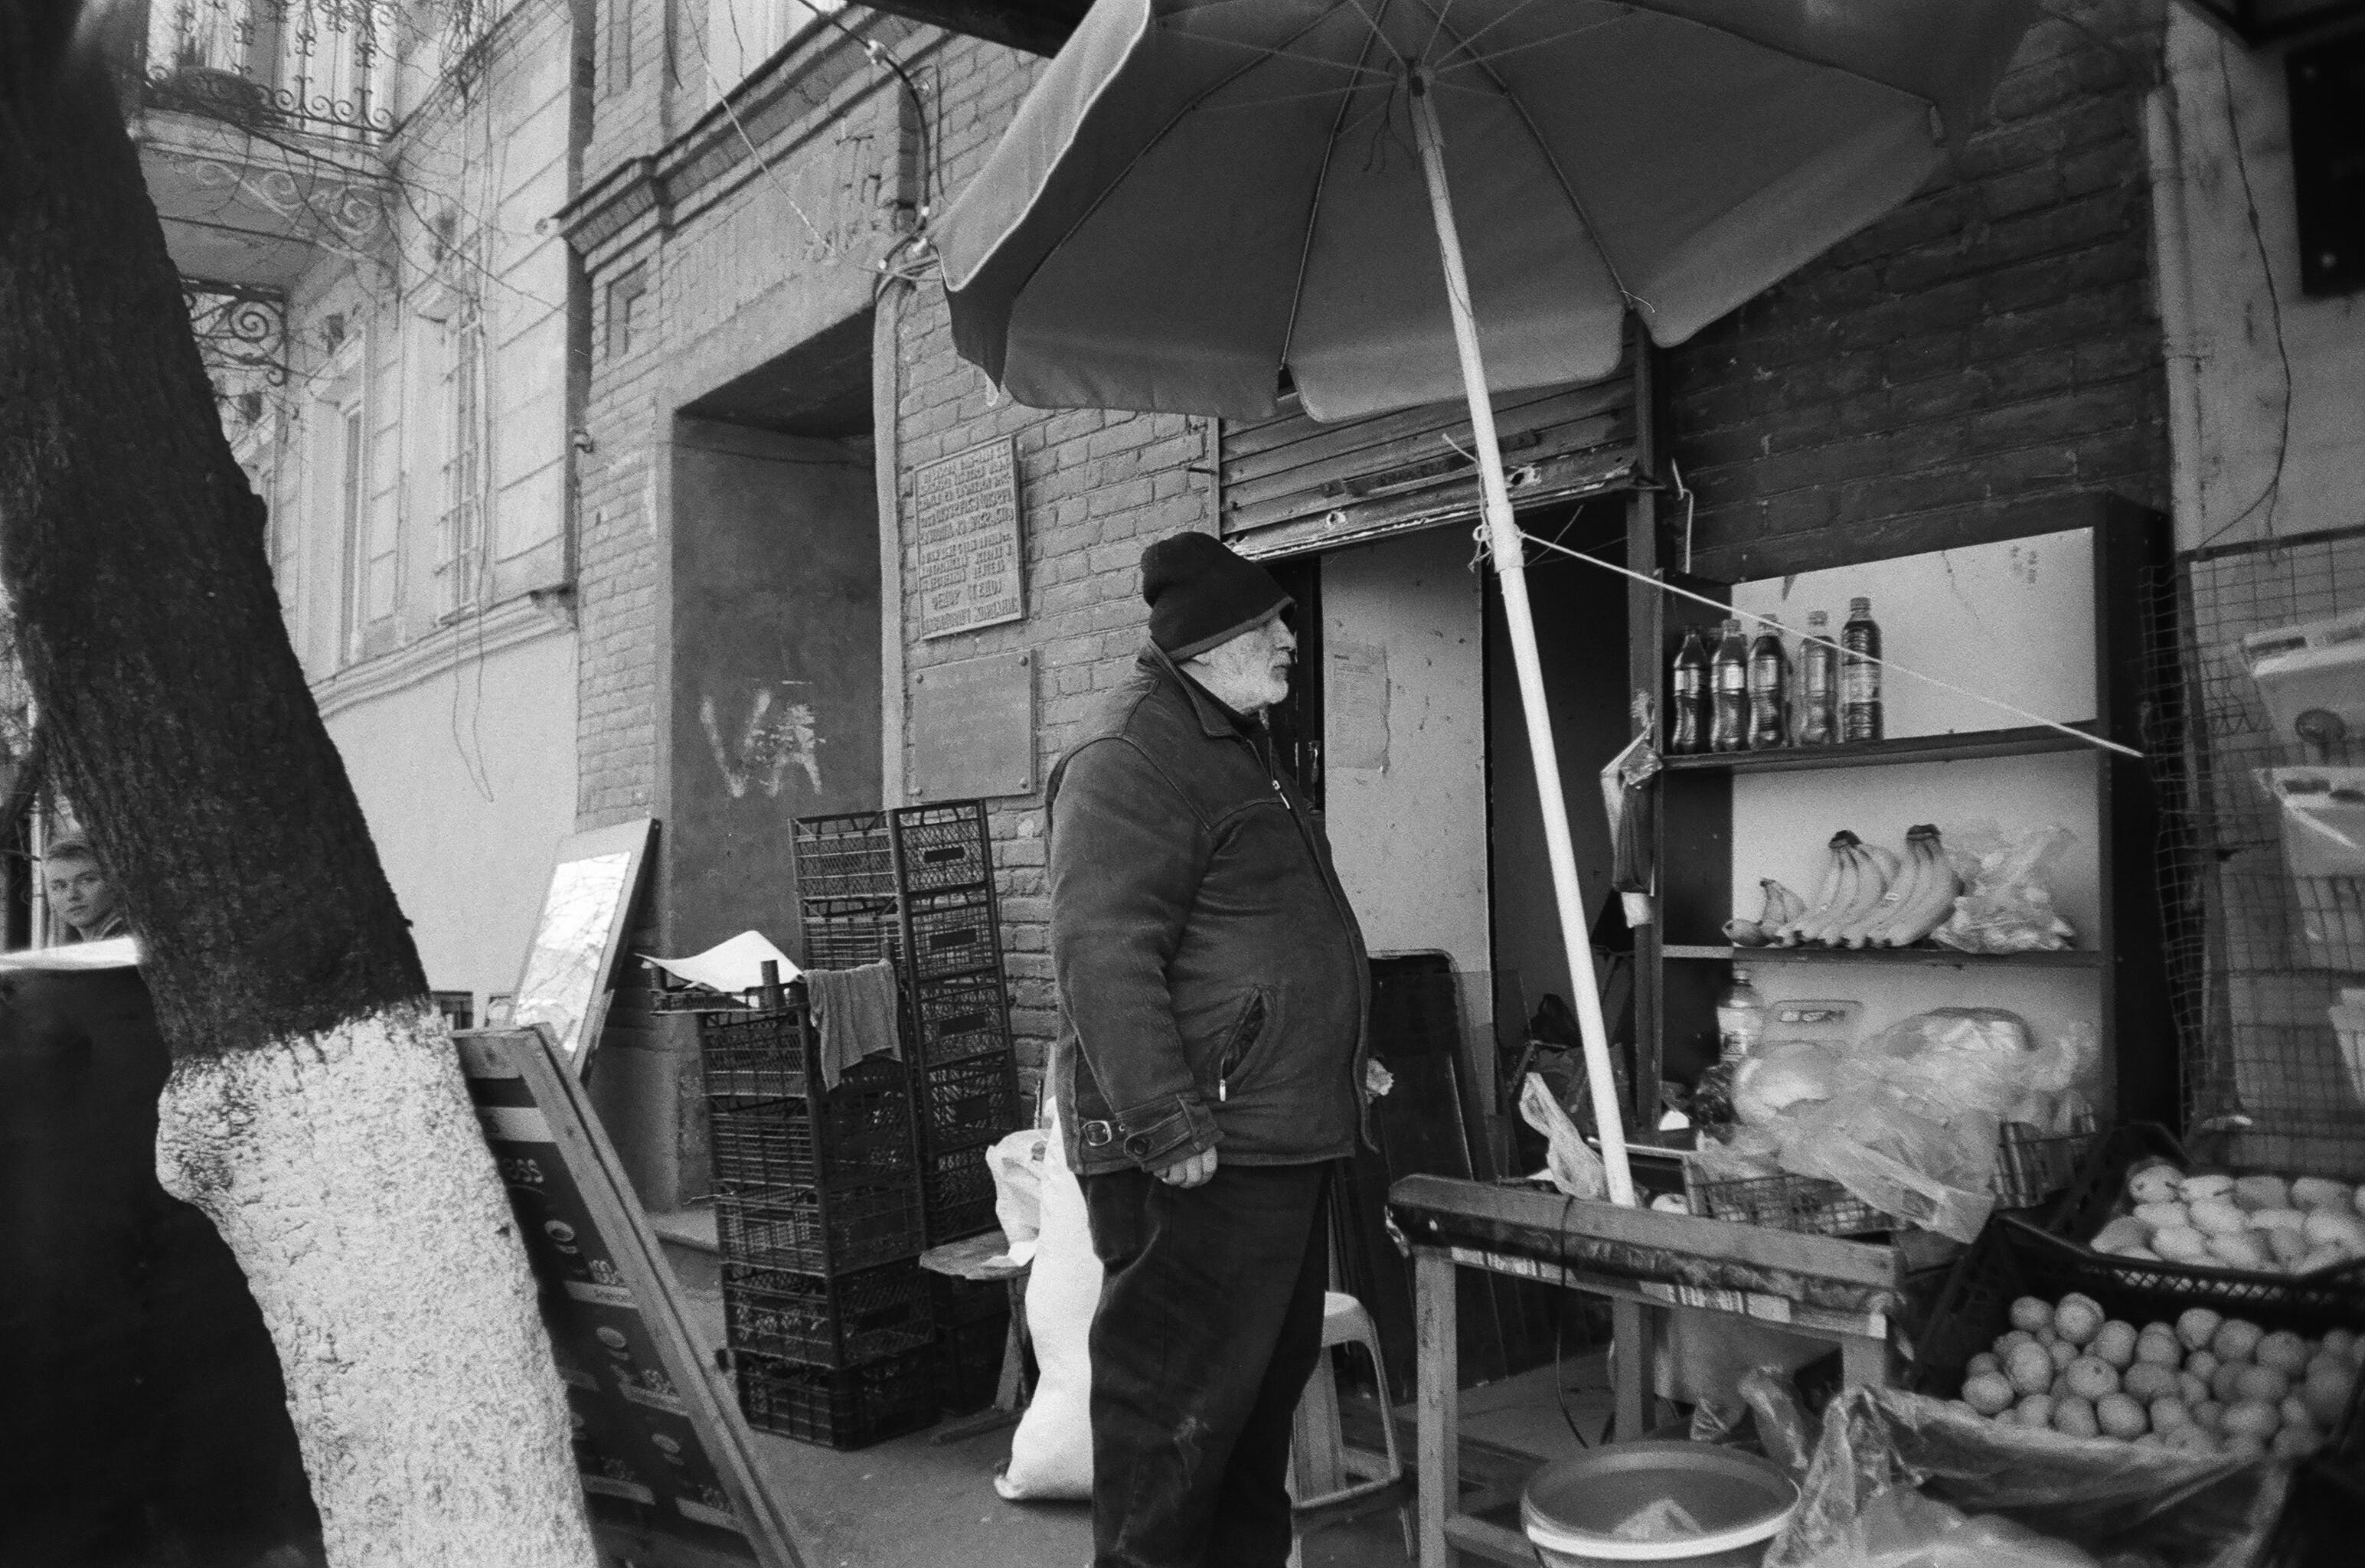 Gray Scale Photo of Man Standing Beside Street With Fruits